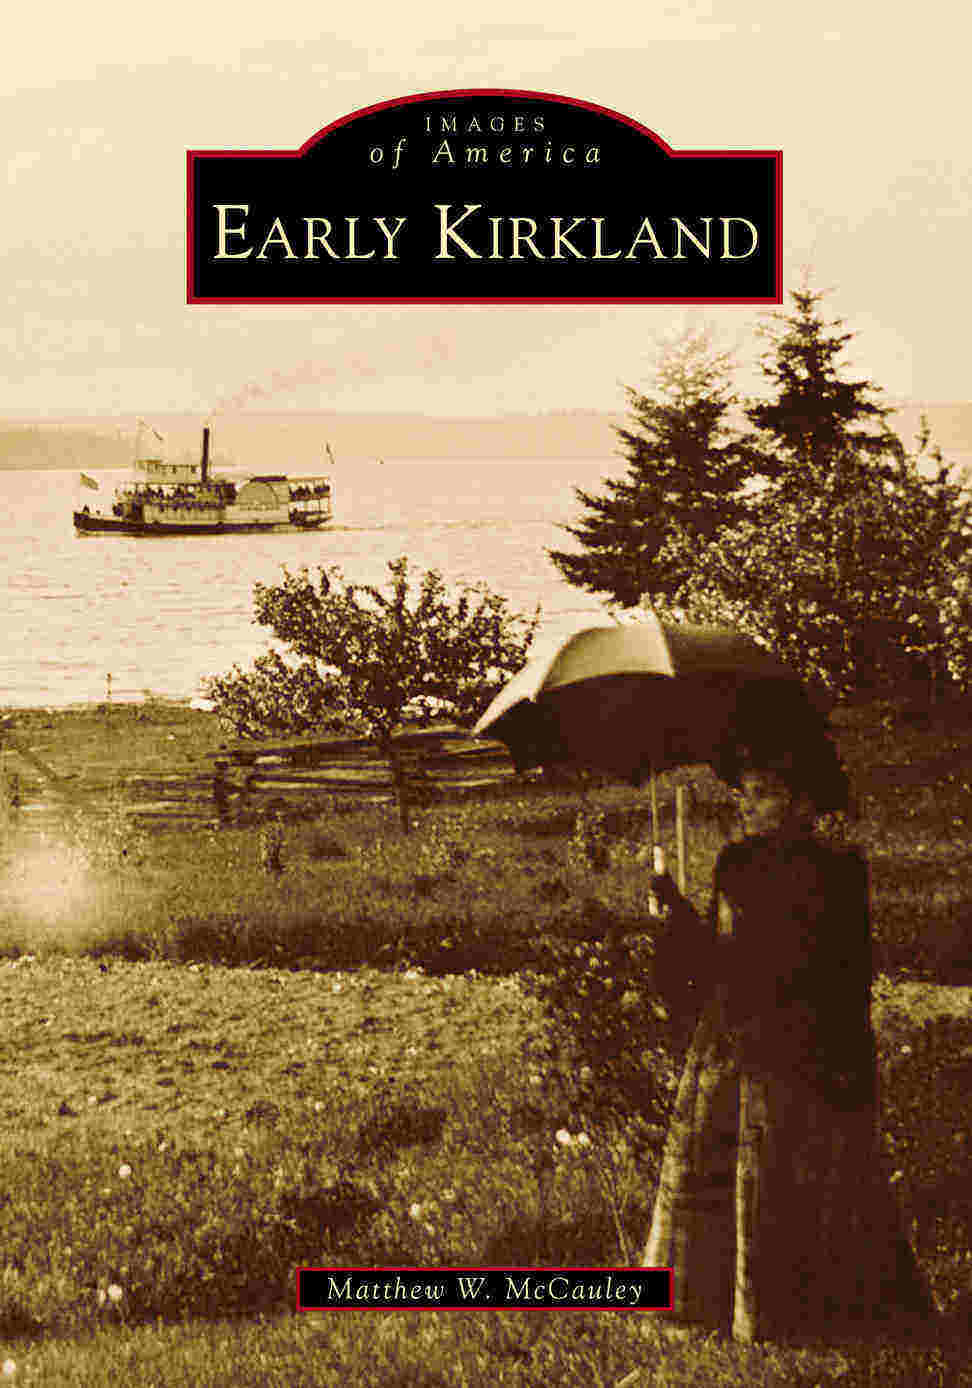 Barnes & Noble to Host Book Signing for Early Kirkland - Arcadia ...